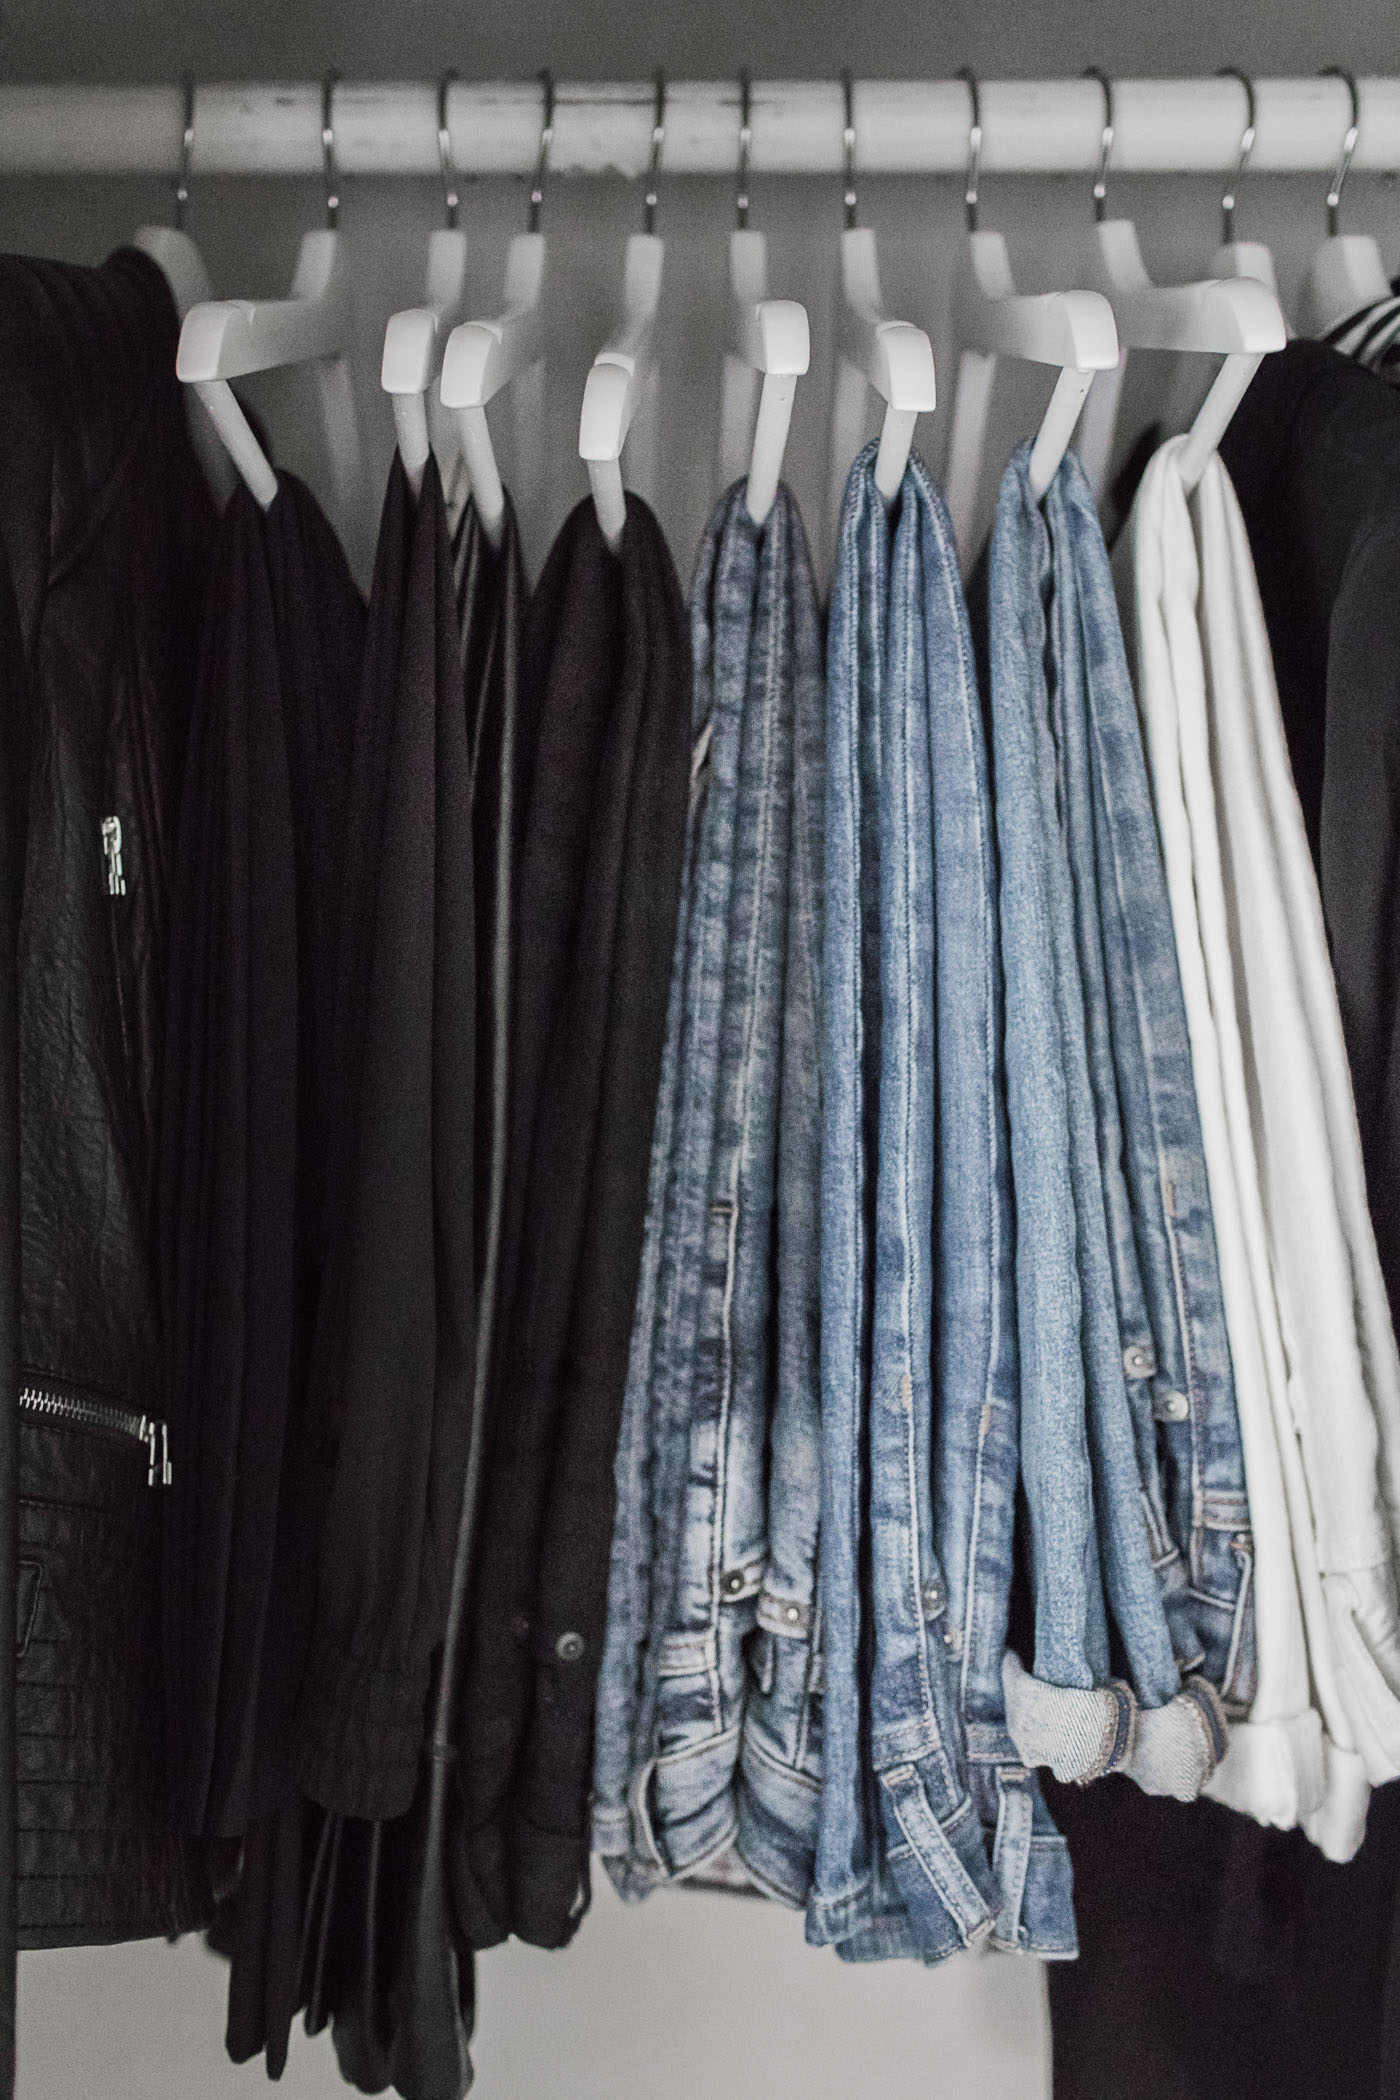 Five Steps to a Closet Makeover, Featuring tips from Shira Gill